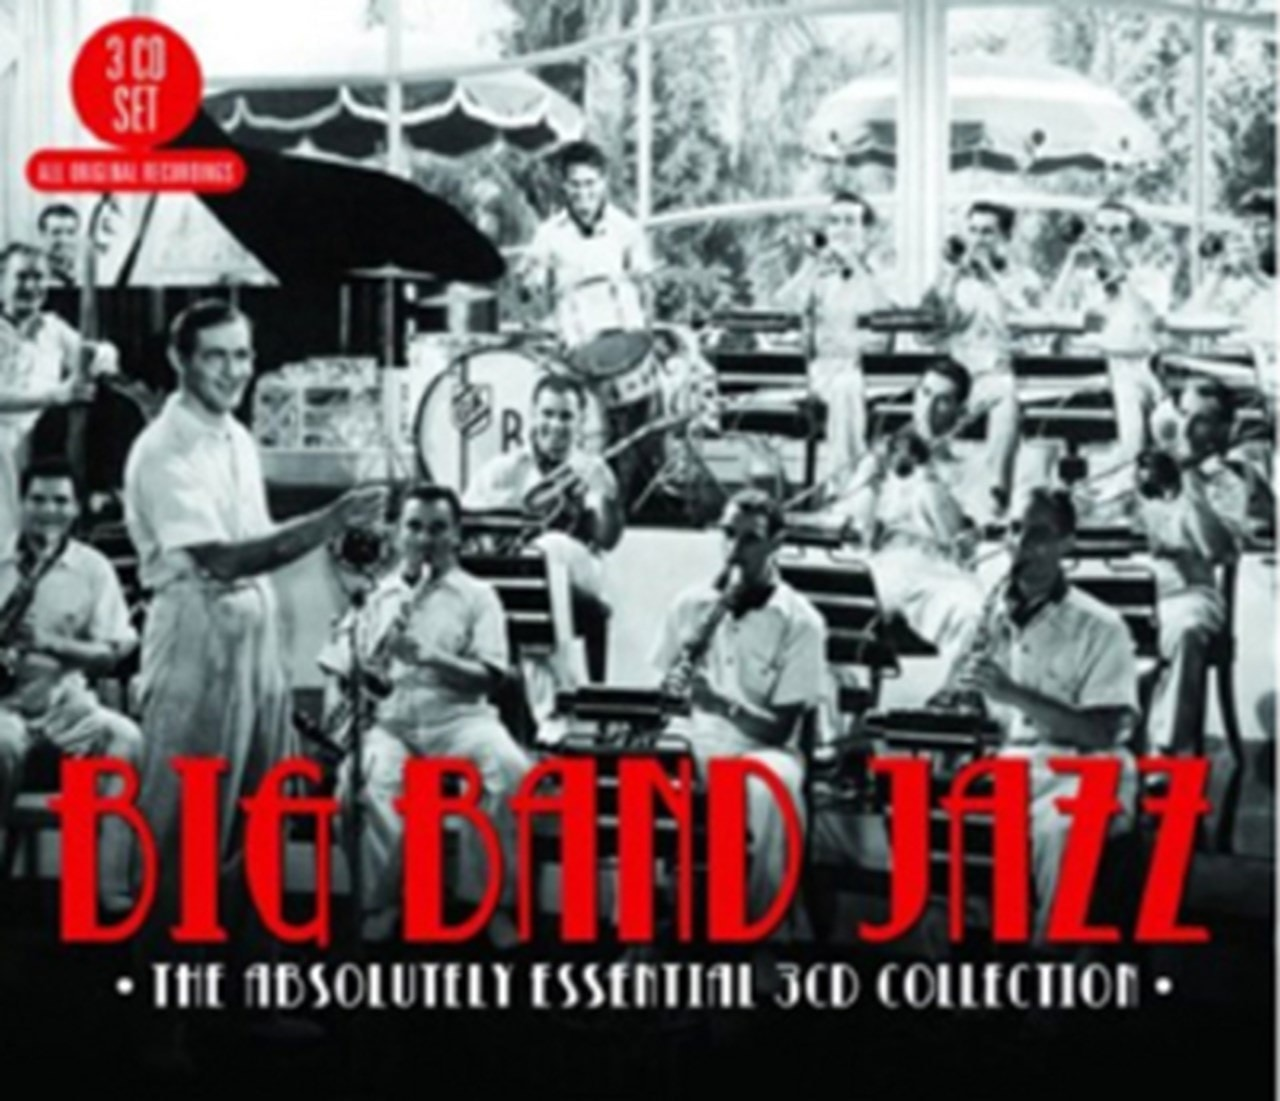 Big Band Jazz: The Absolutely Essential Collection - 1